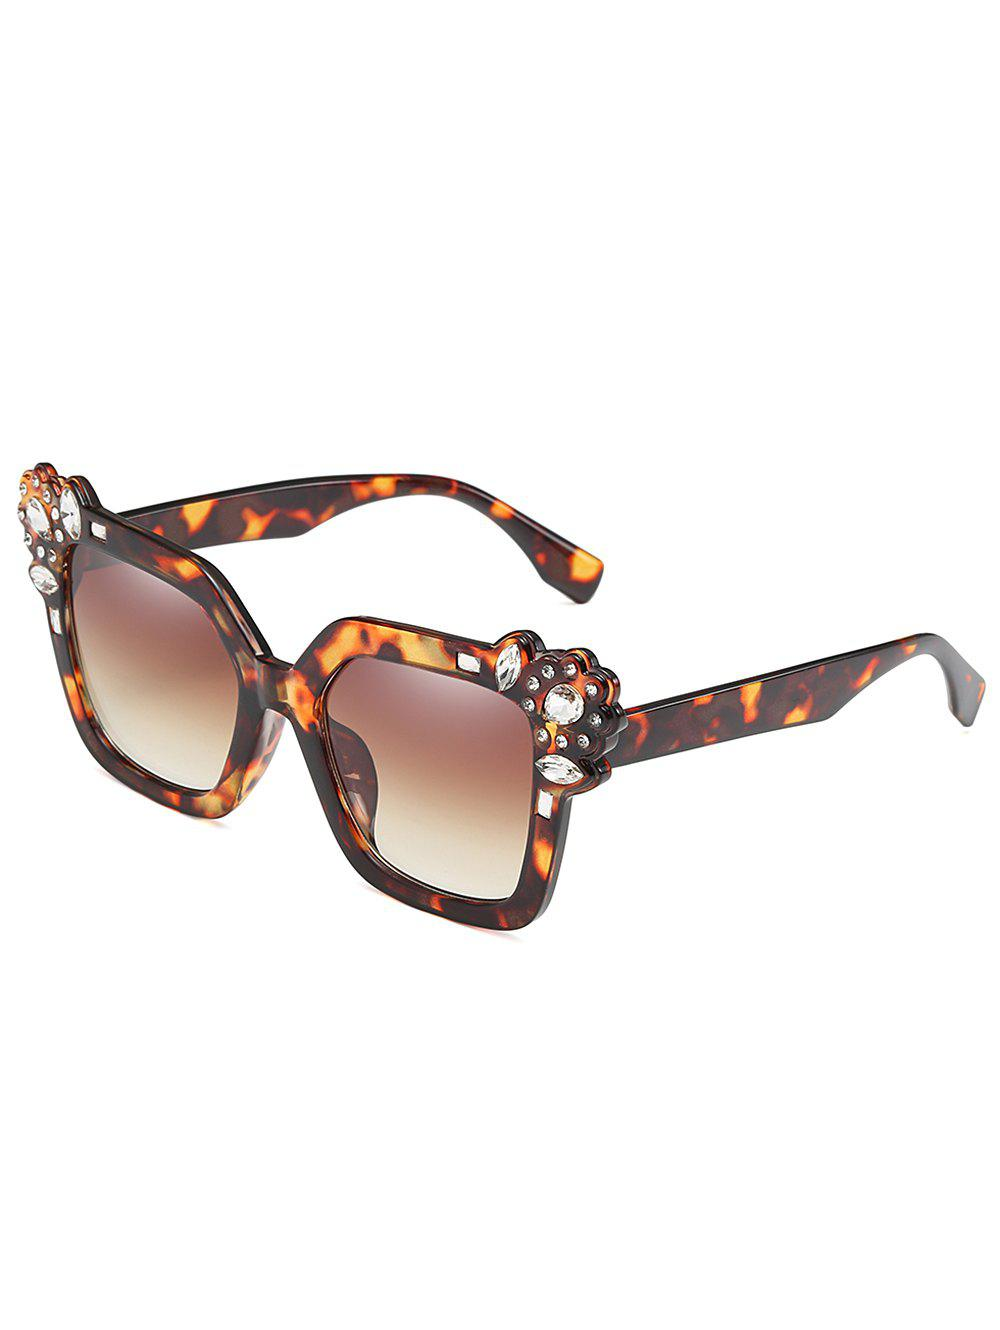 Latest Anti Fatigue Rhinestone Inlaid Oversized Sunglasses